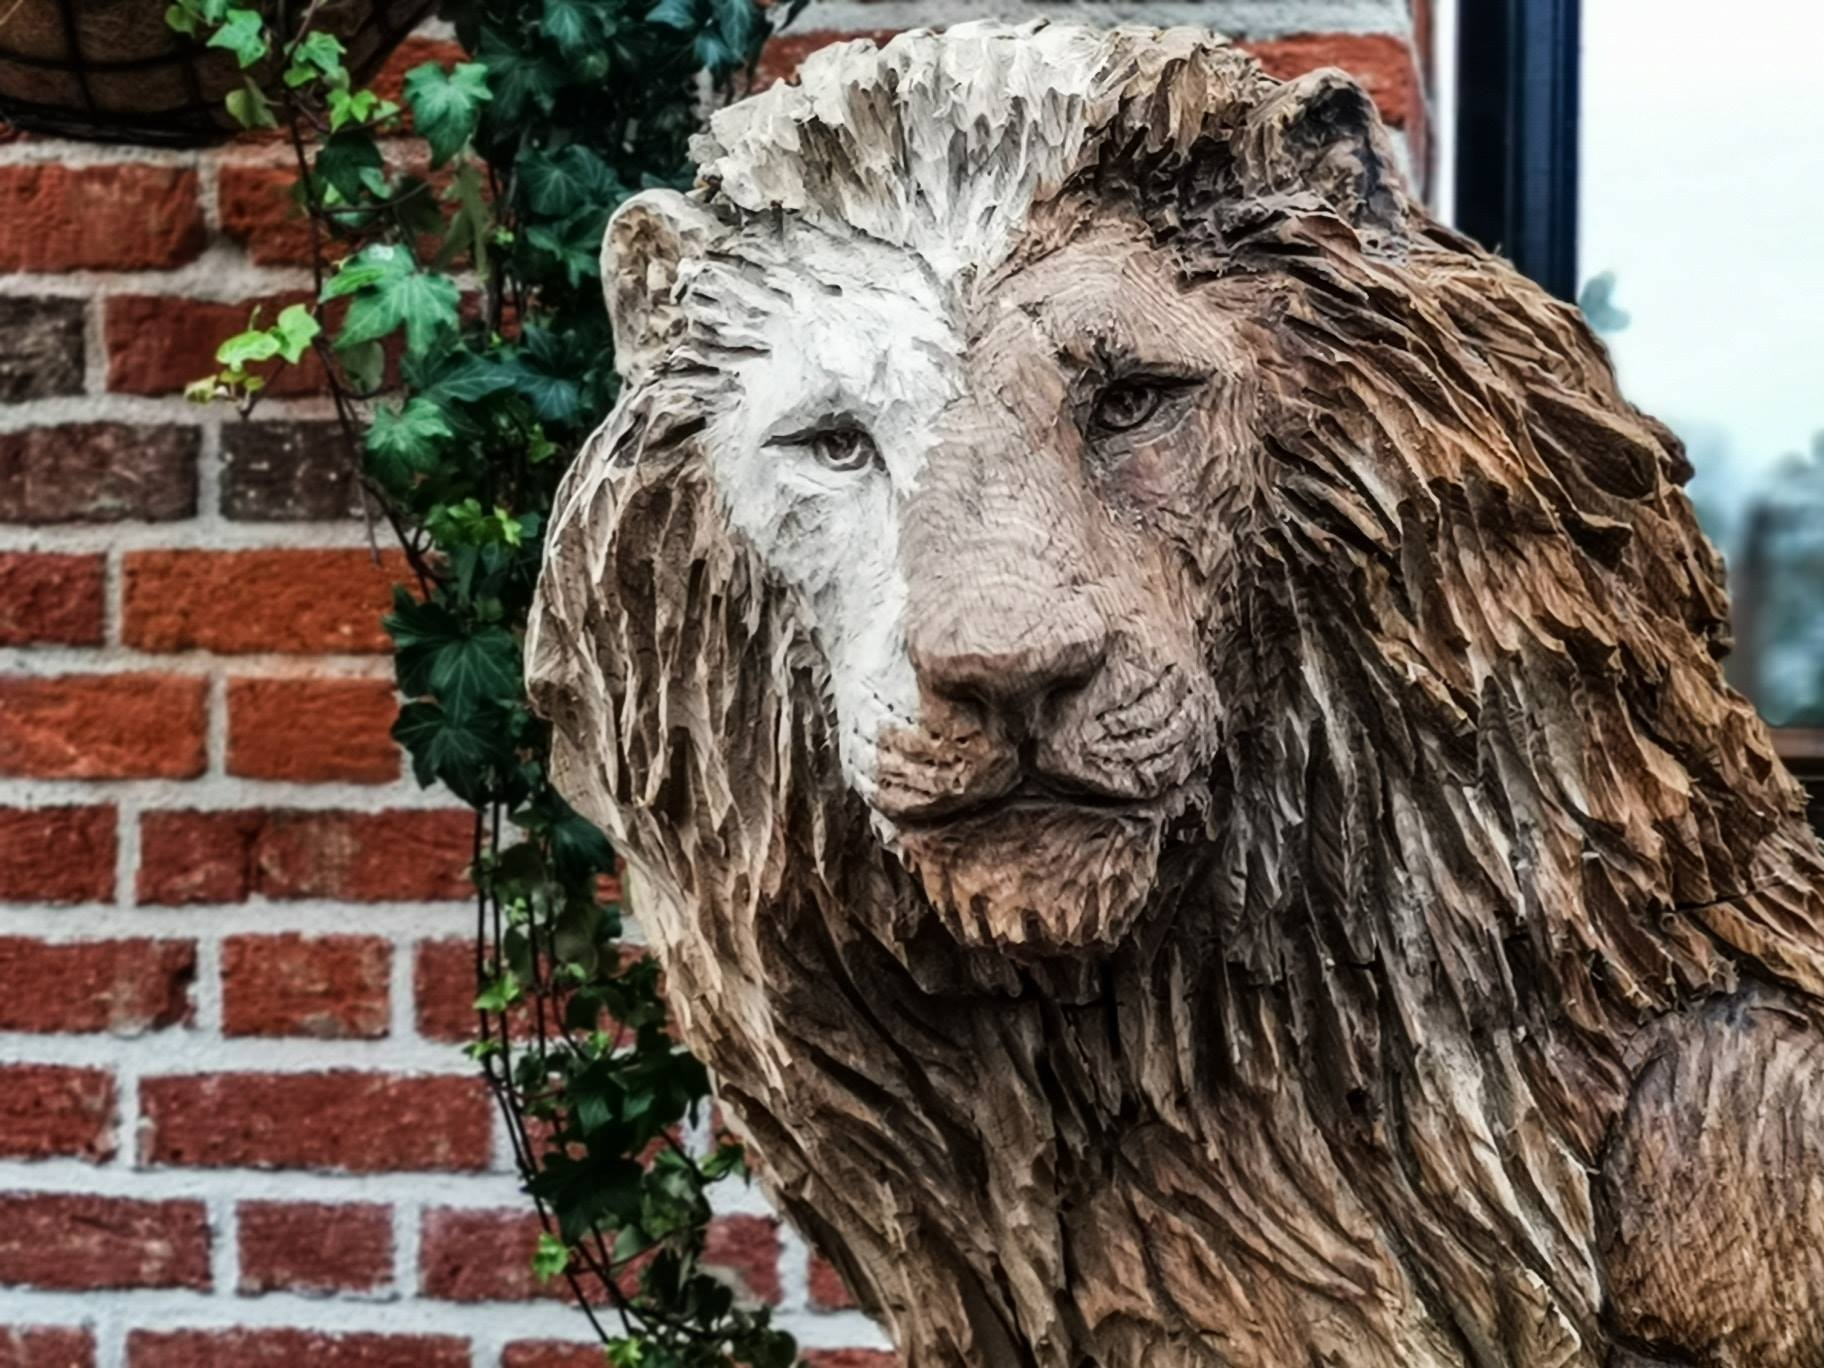 sculptures of 2020: close up of the face of a lion. Carved by Simon O'Rourke